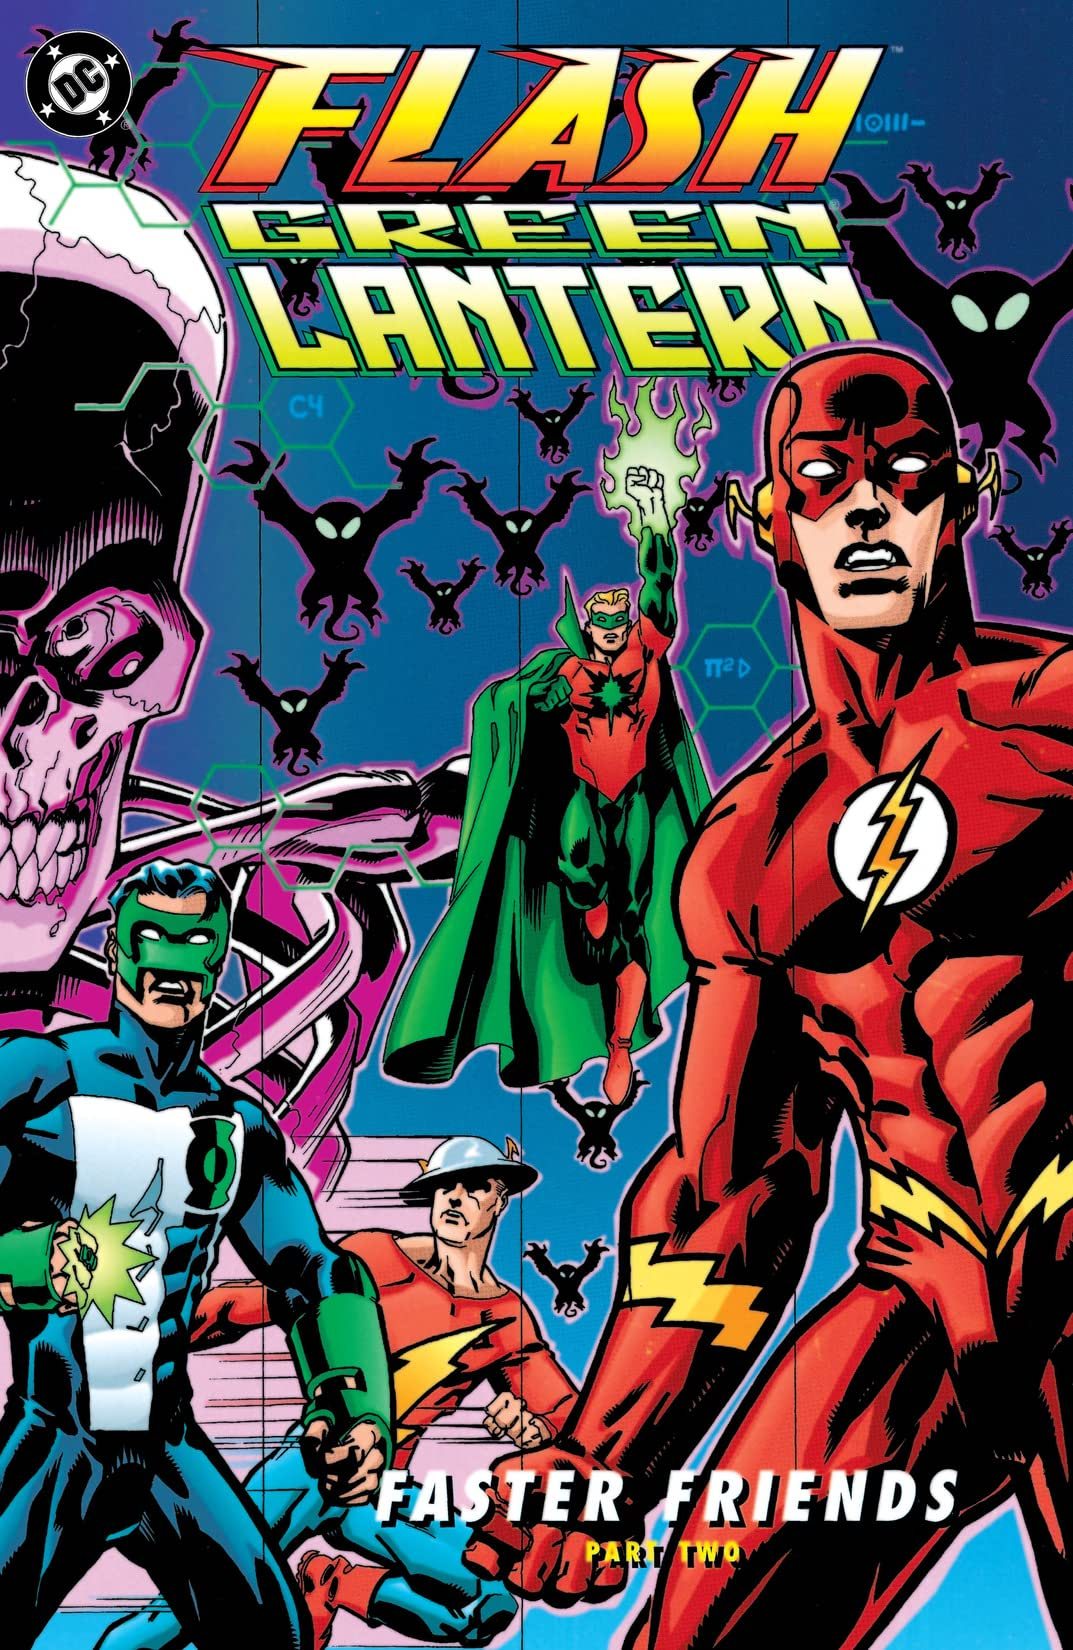 Flash/Green Lantern: Faster Friends (1997) #2